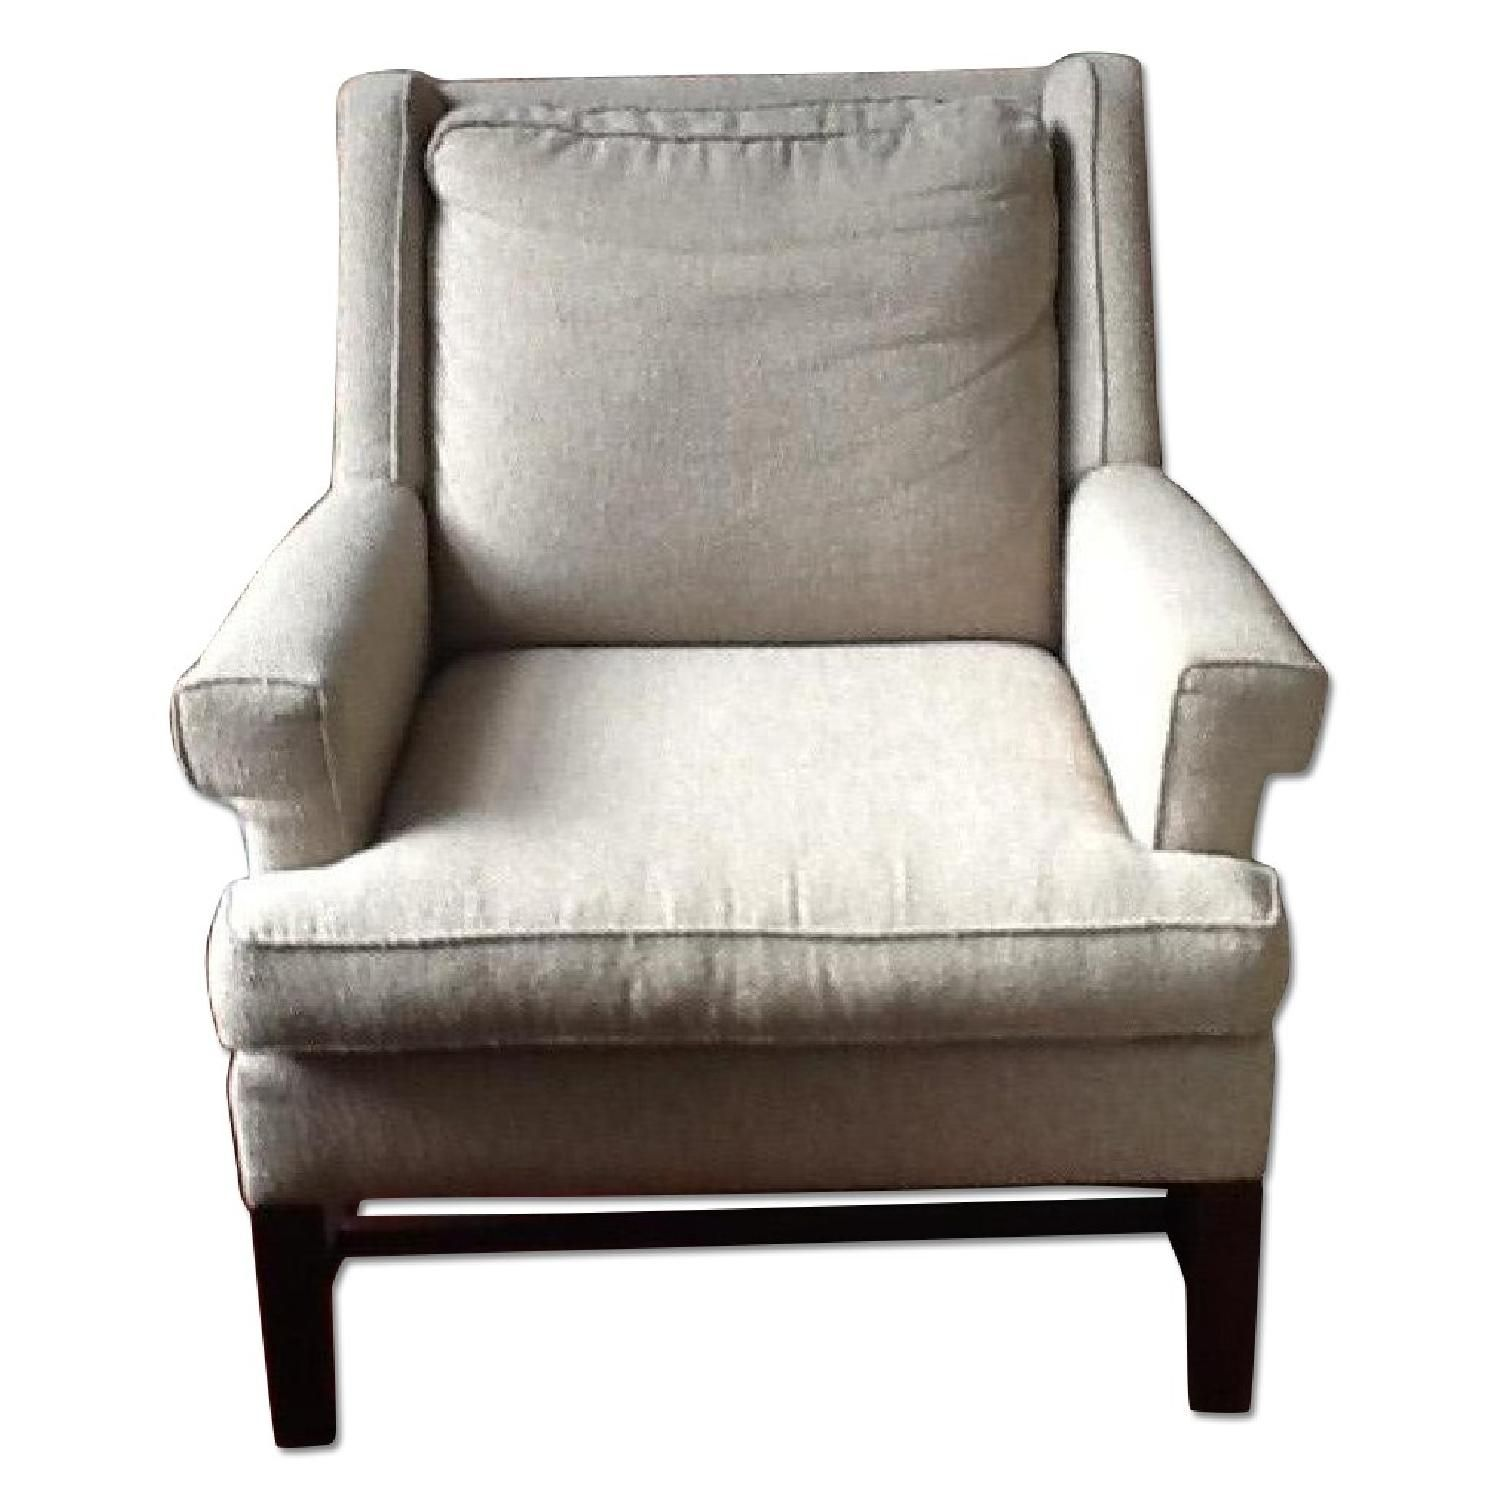 Used Wingback Chairs Martha Stewart Signature Modern Wingback Chairs Shopping For